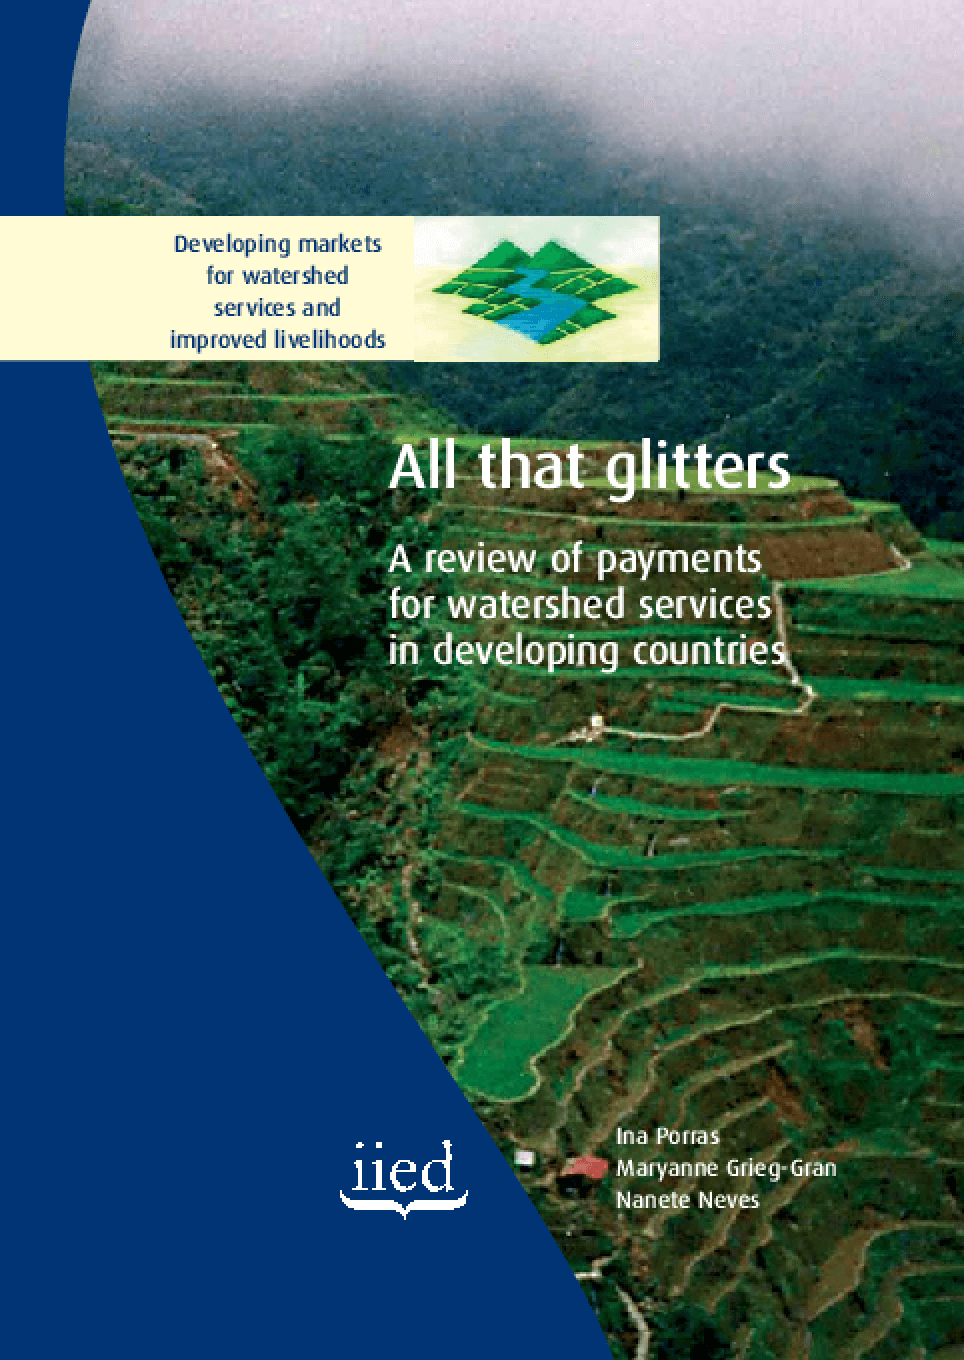 All that Glitters: A Review of Payments for Watershed Services in Developing Countries